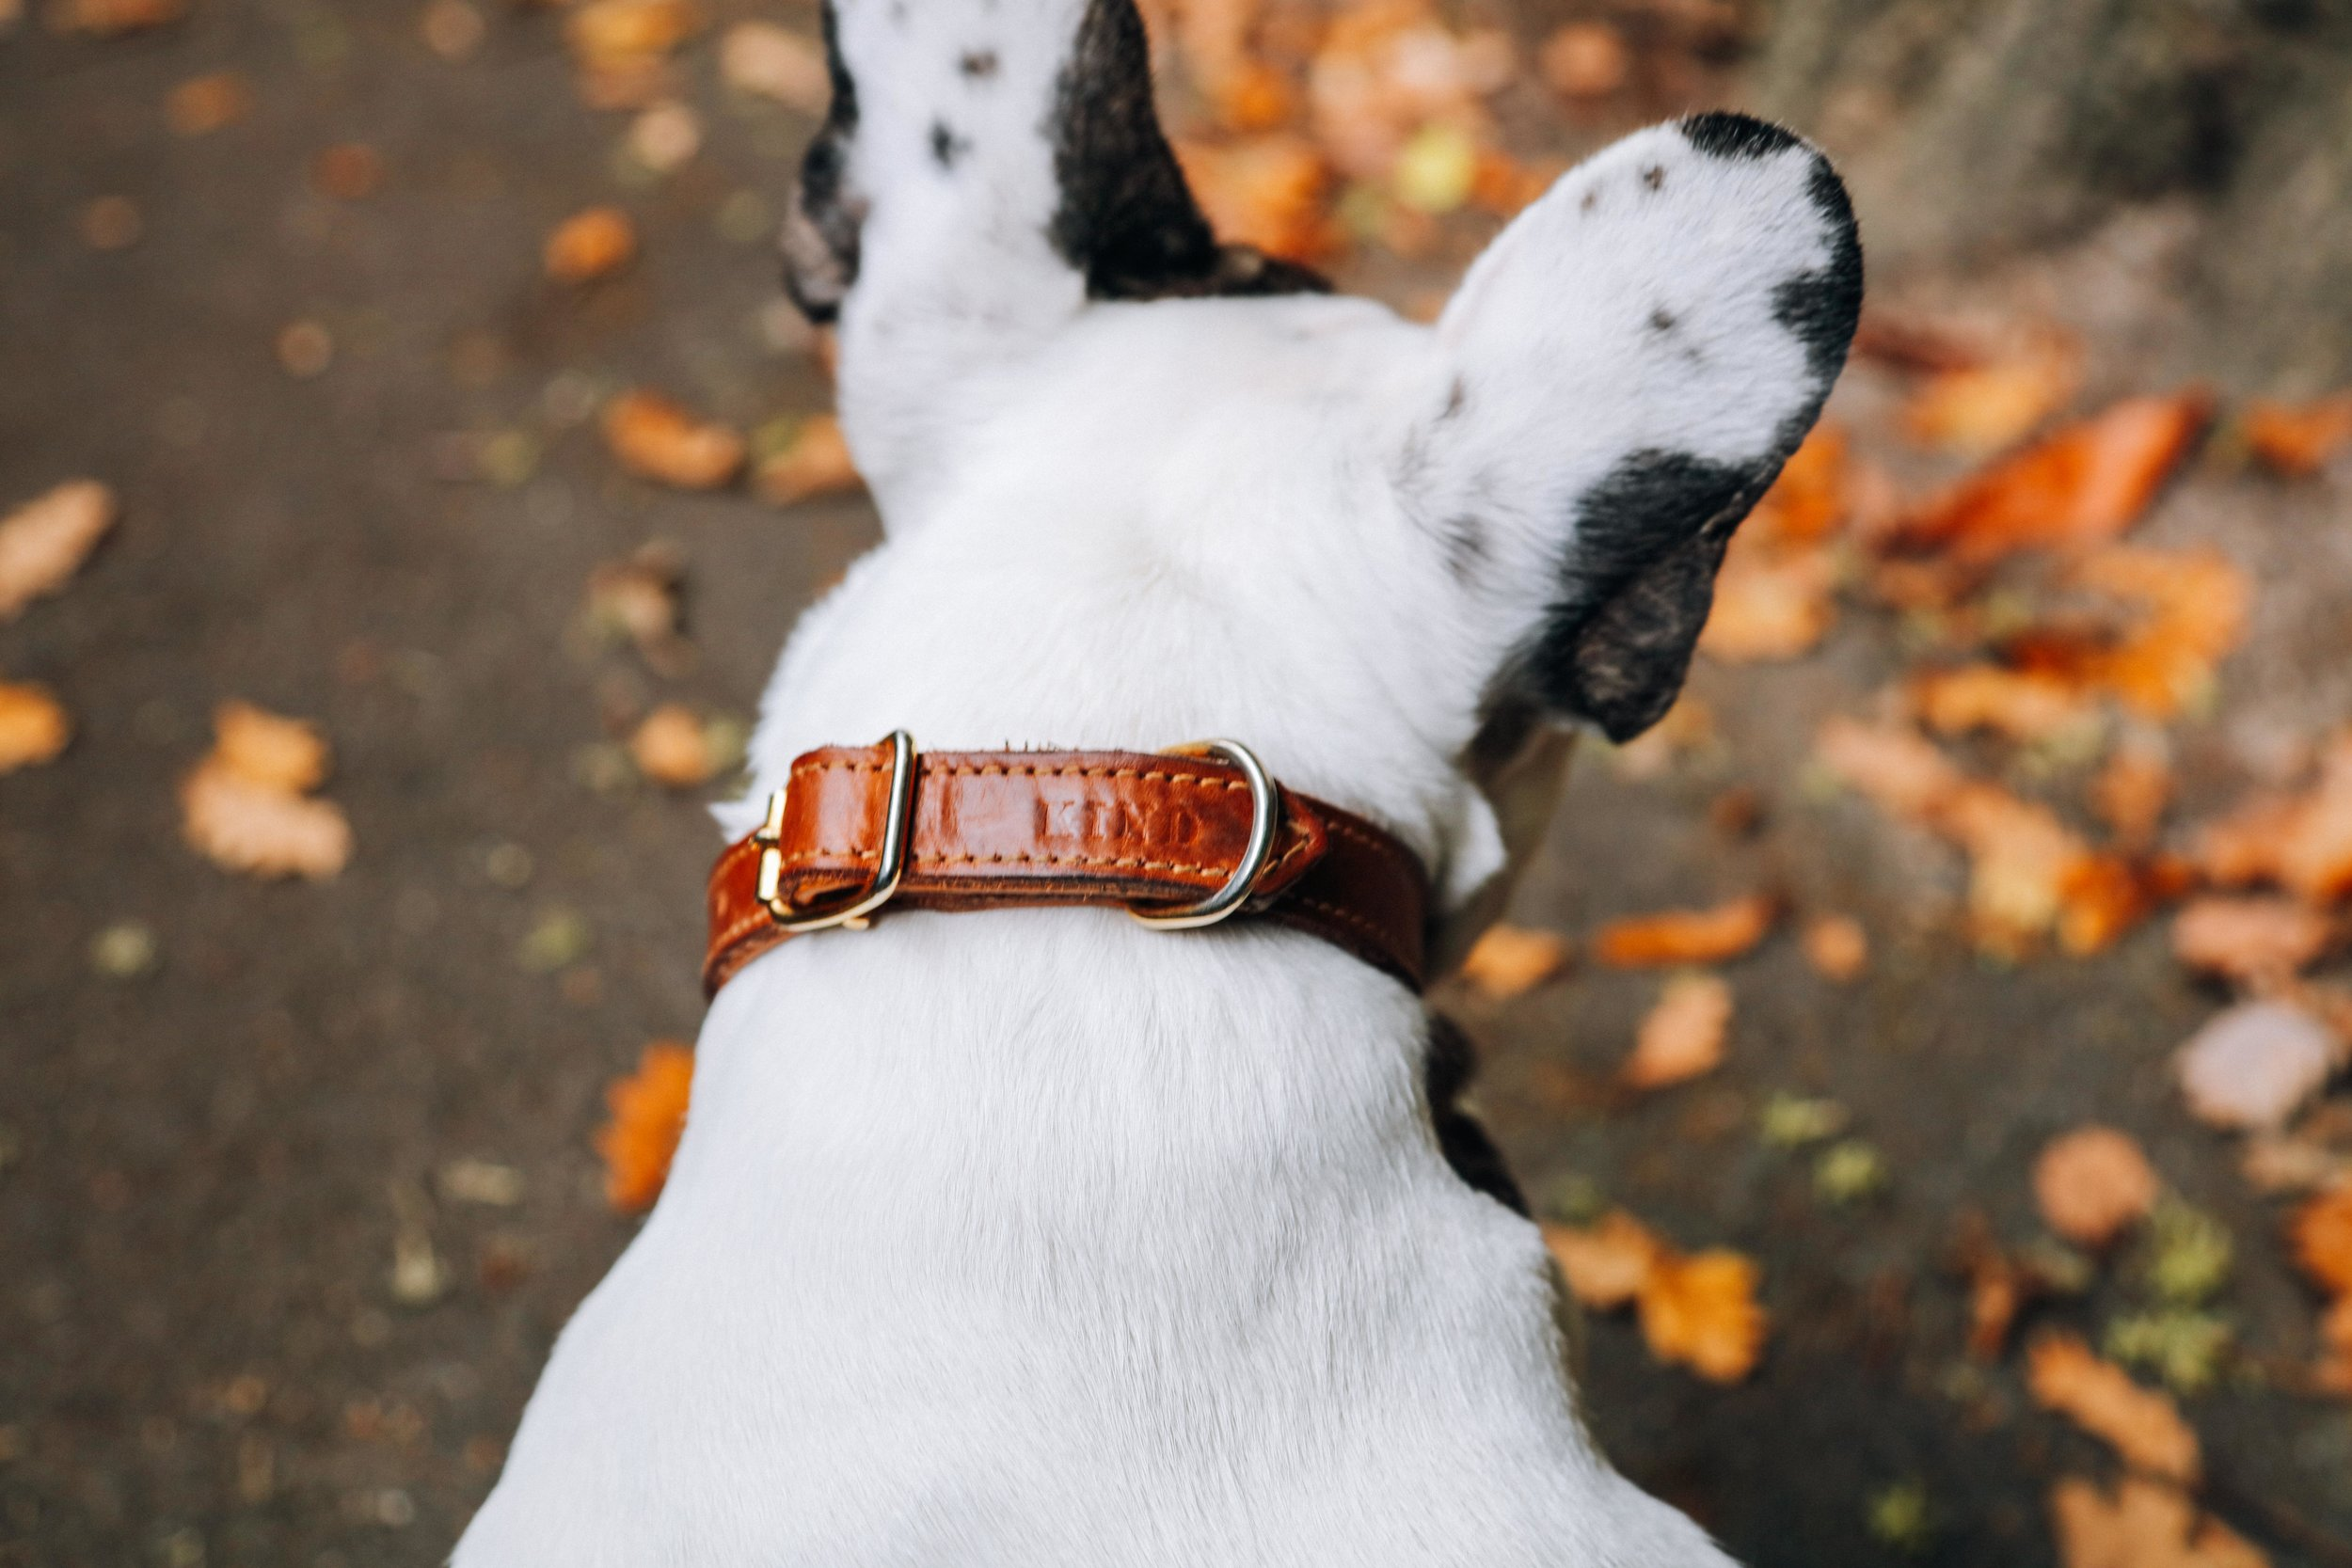 Billion-frenchie-leather lead-london-63.jpg